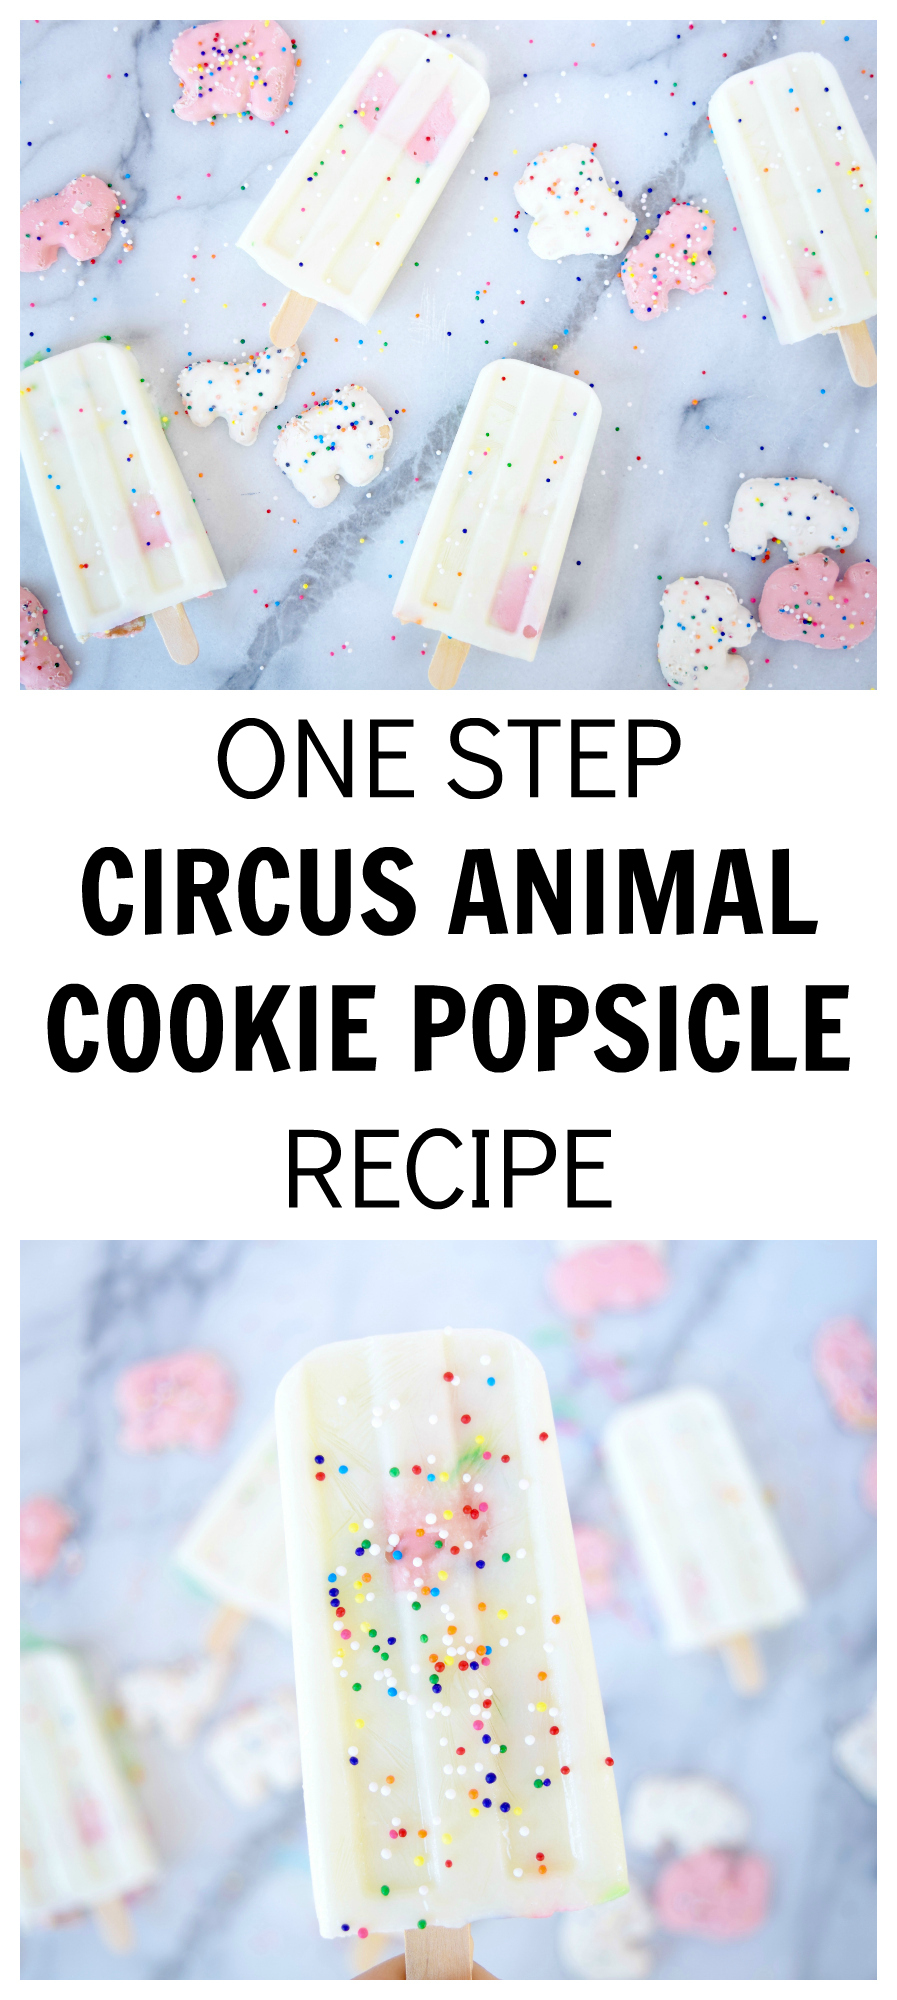 ONE STEP CIRCUS ANIMAL COOKIE POPSICLE RECIPE